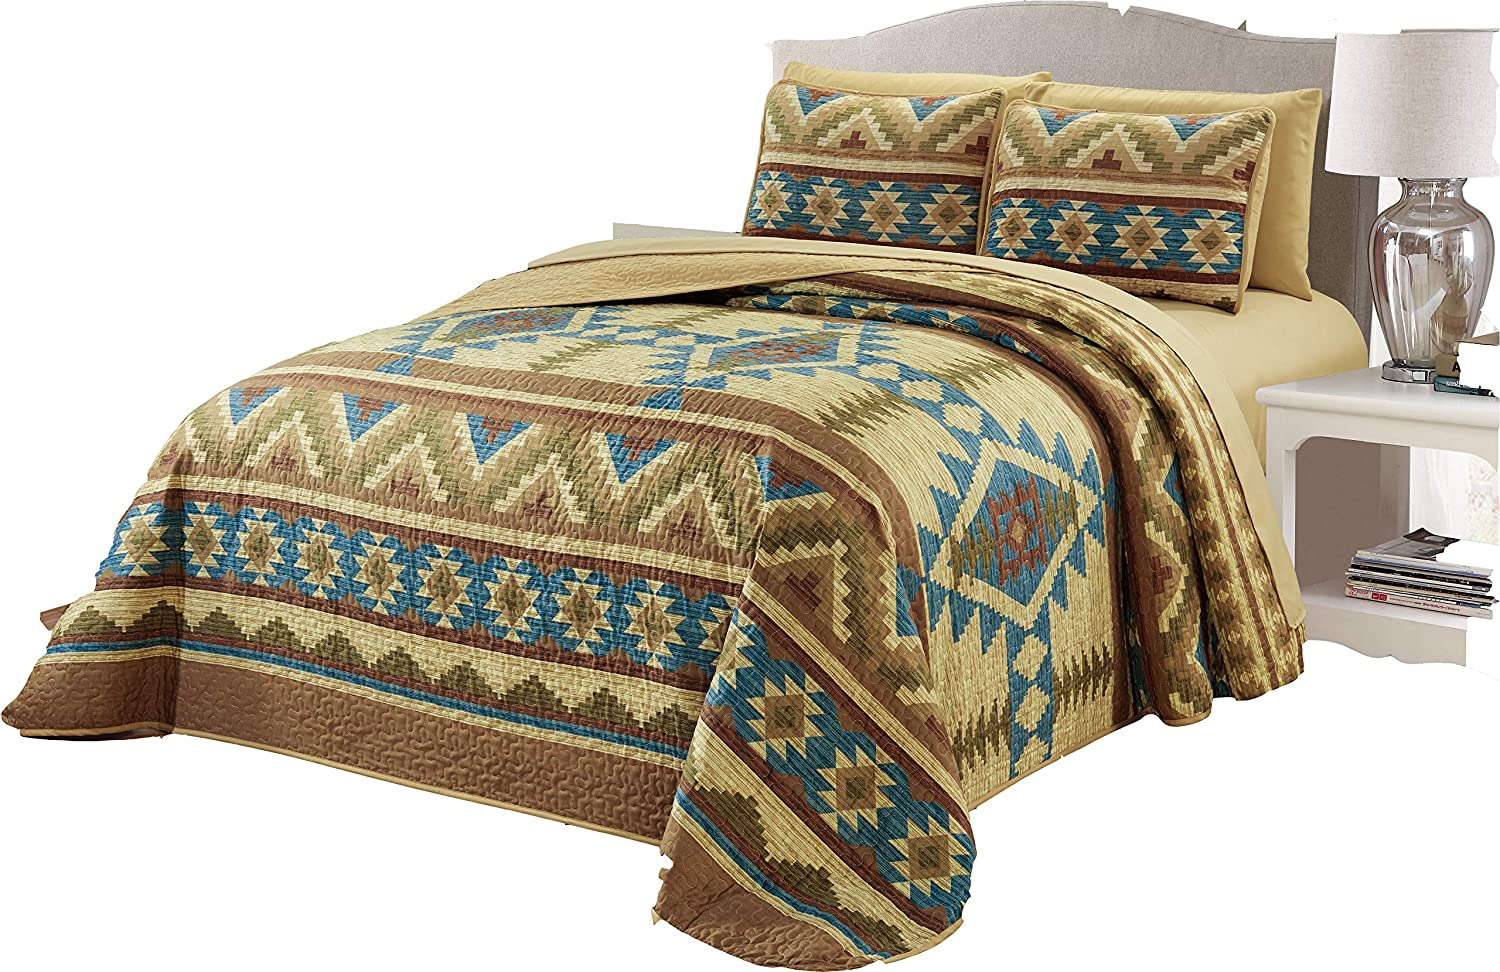 Cal.king Micasa 7 Piece Oversized Bedspread Quilt Set with Complete Sheet Set Western Southwestern Native American Tribal Navajo Design (King)